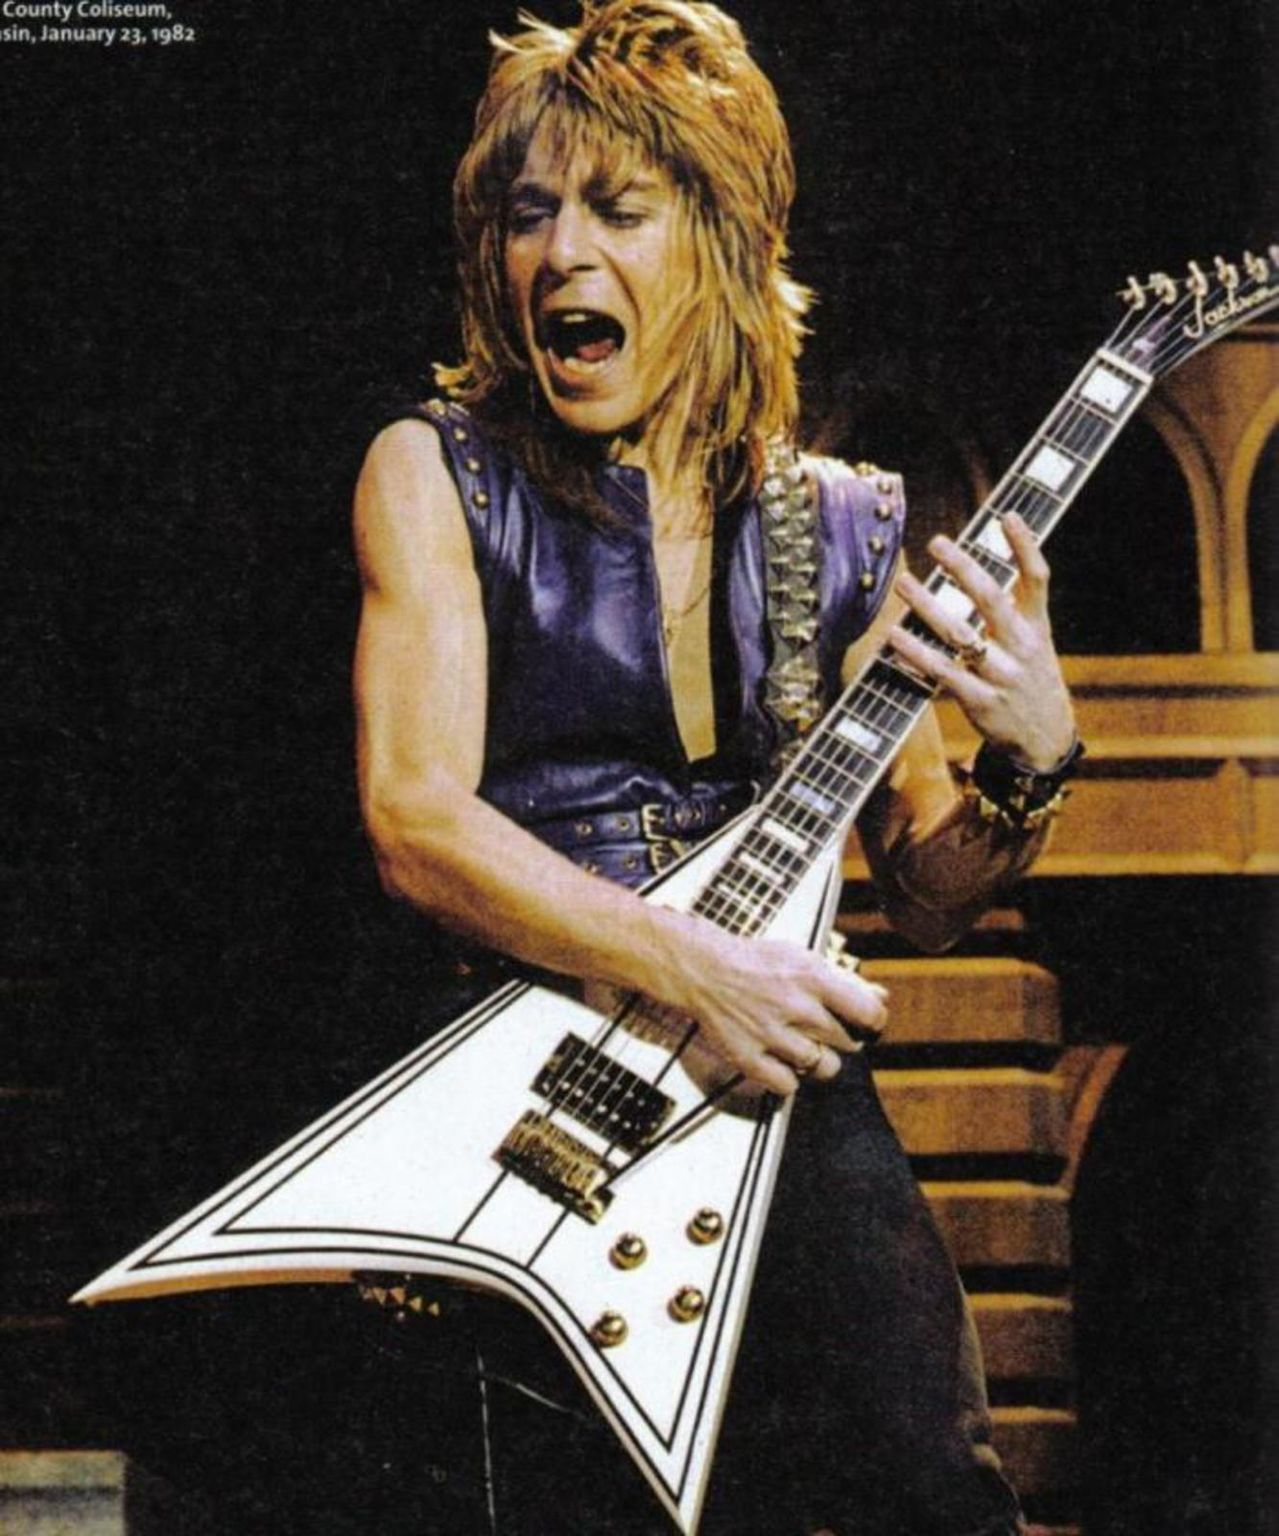 Randy Rhoads - January 23, 1982, County Coliseum